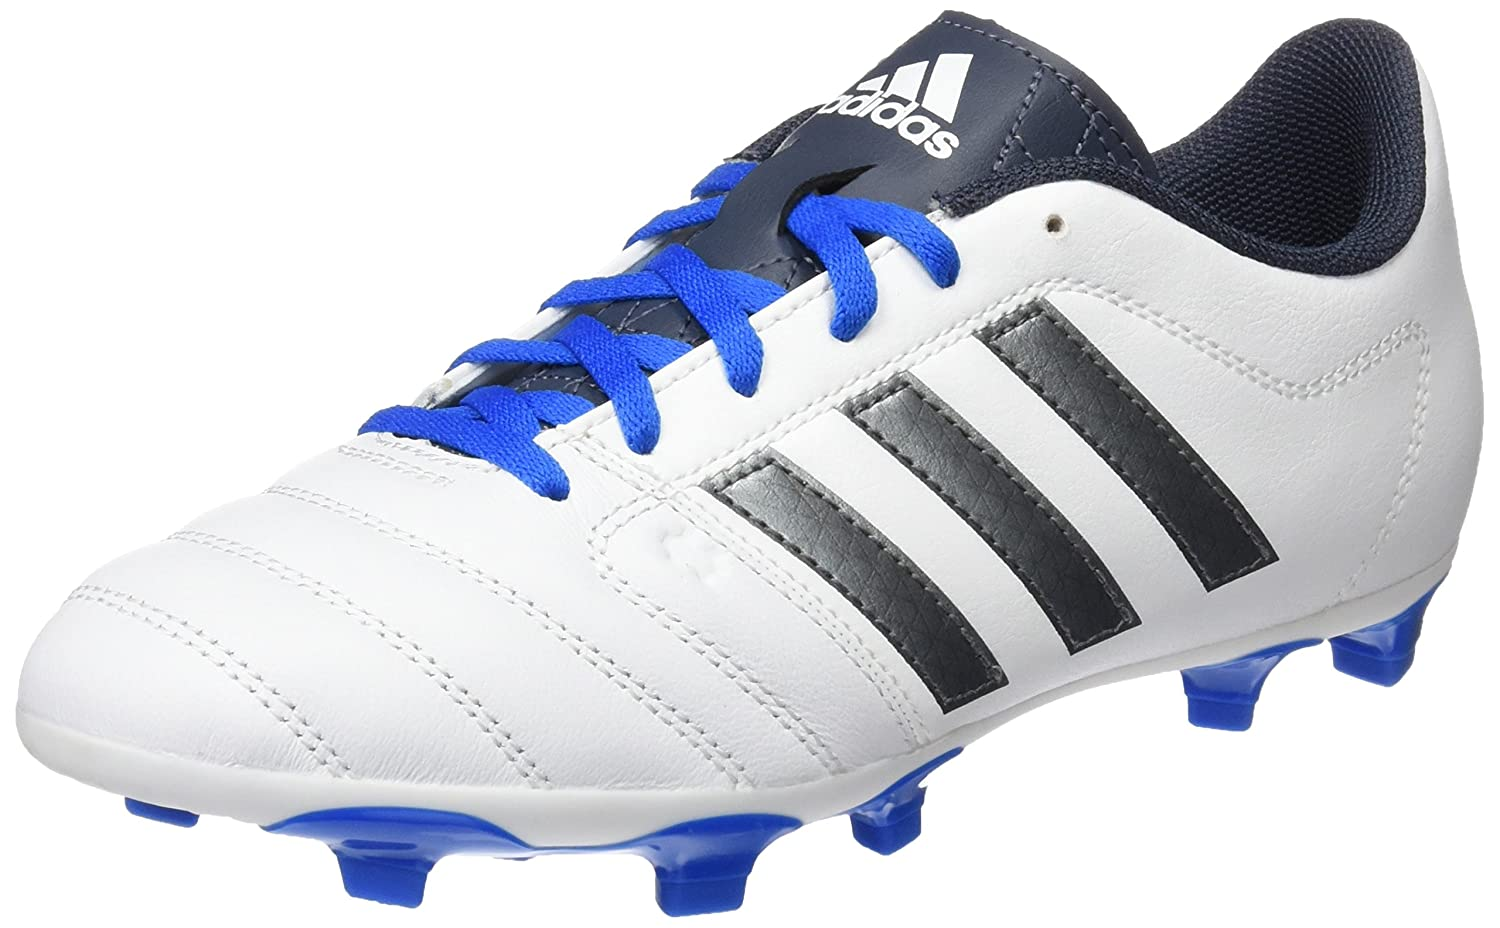 Adidas Gloro 16.2 FG, Chaussures de Football Entrainement Mixte Adulte